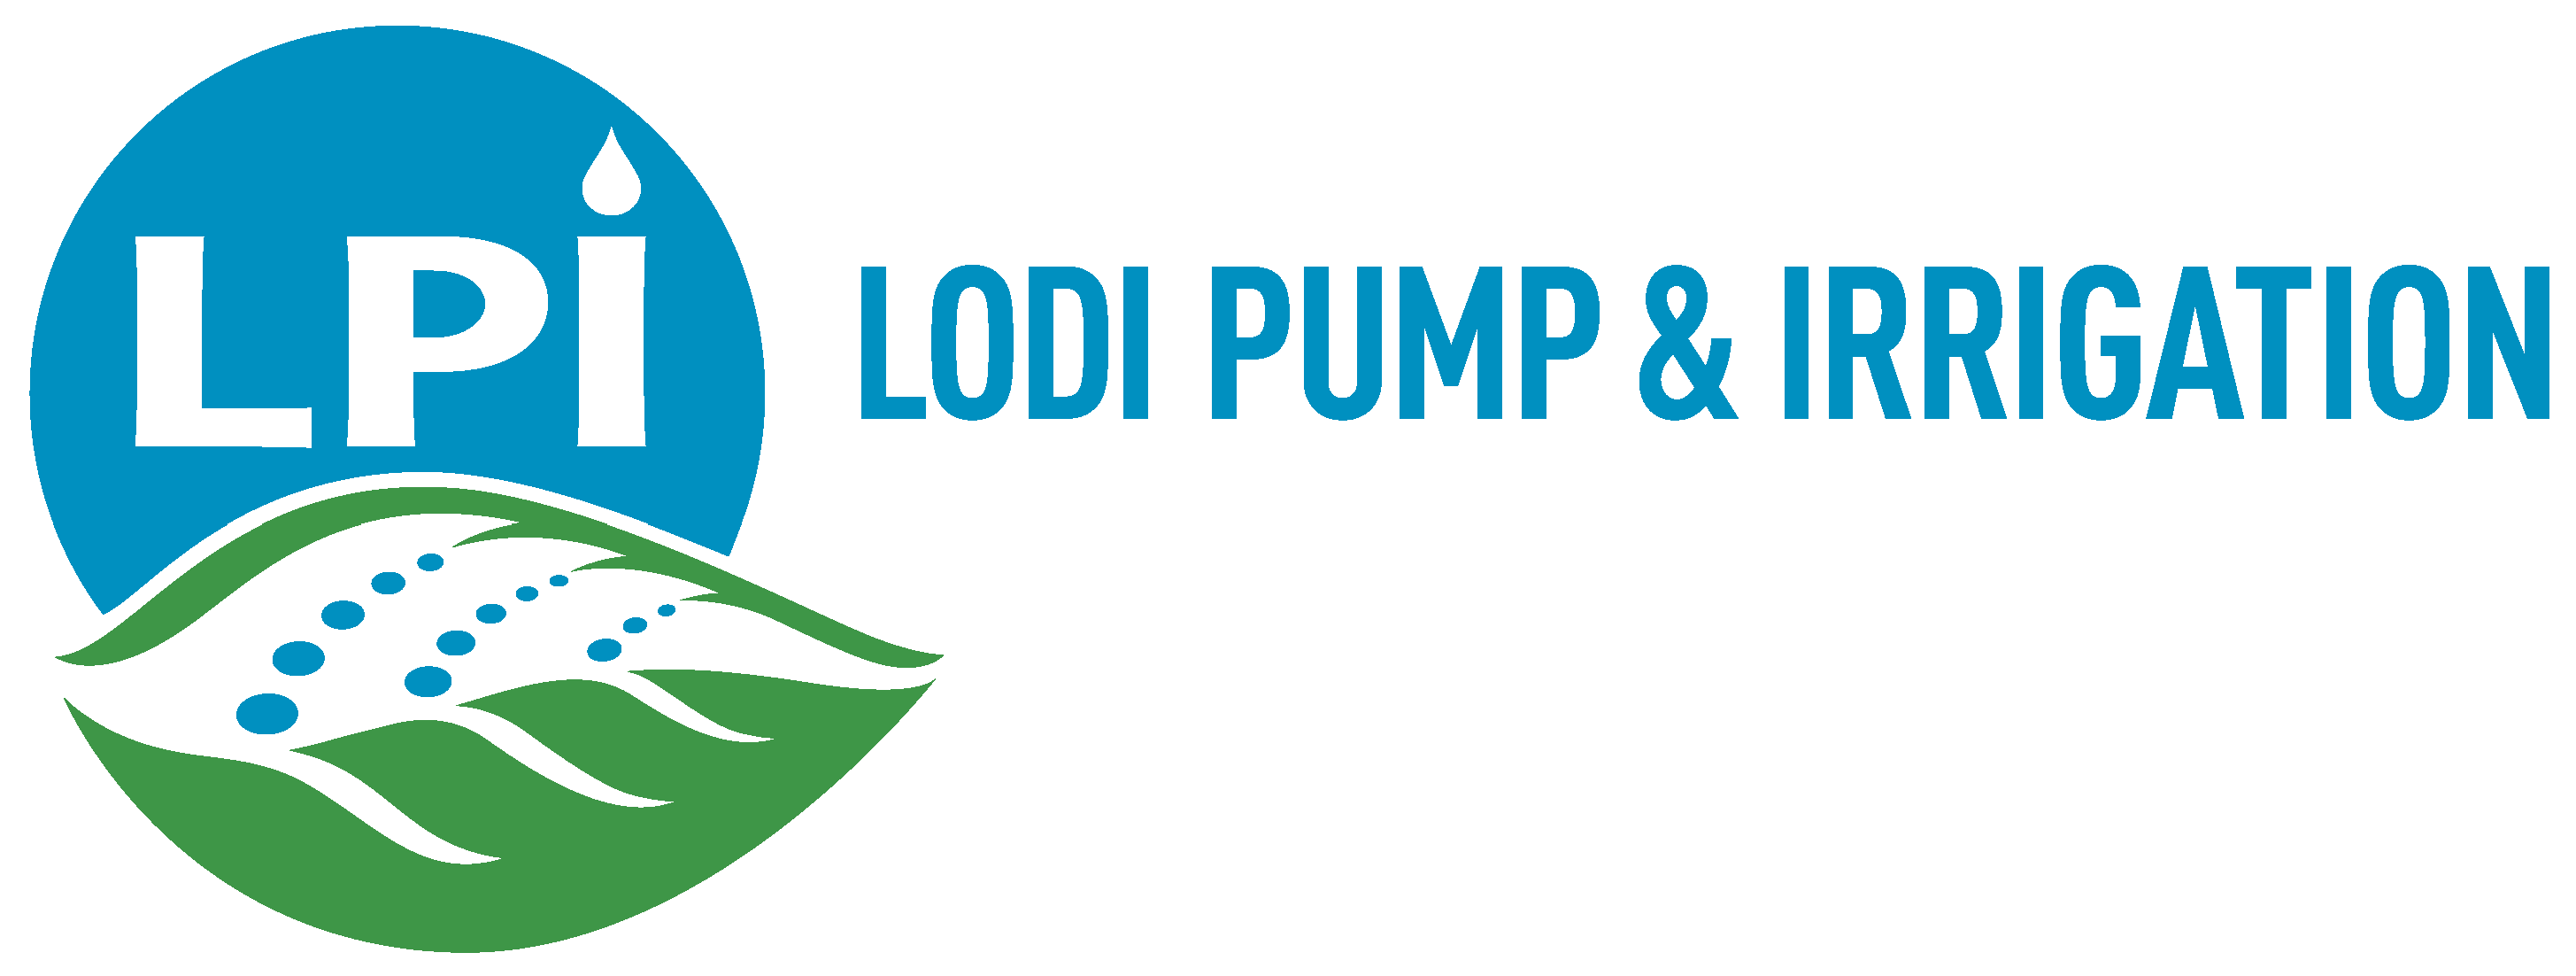 lodi-pump-and-irrigation-logo-1.png